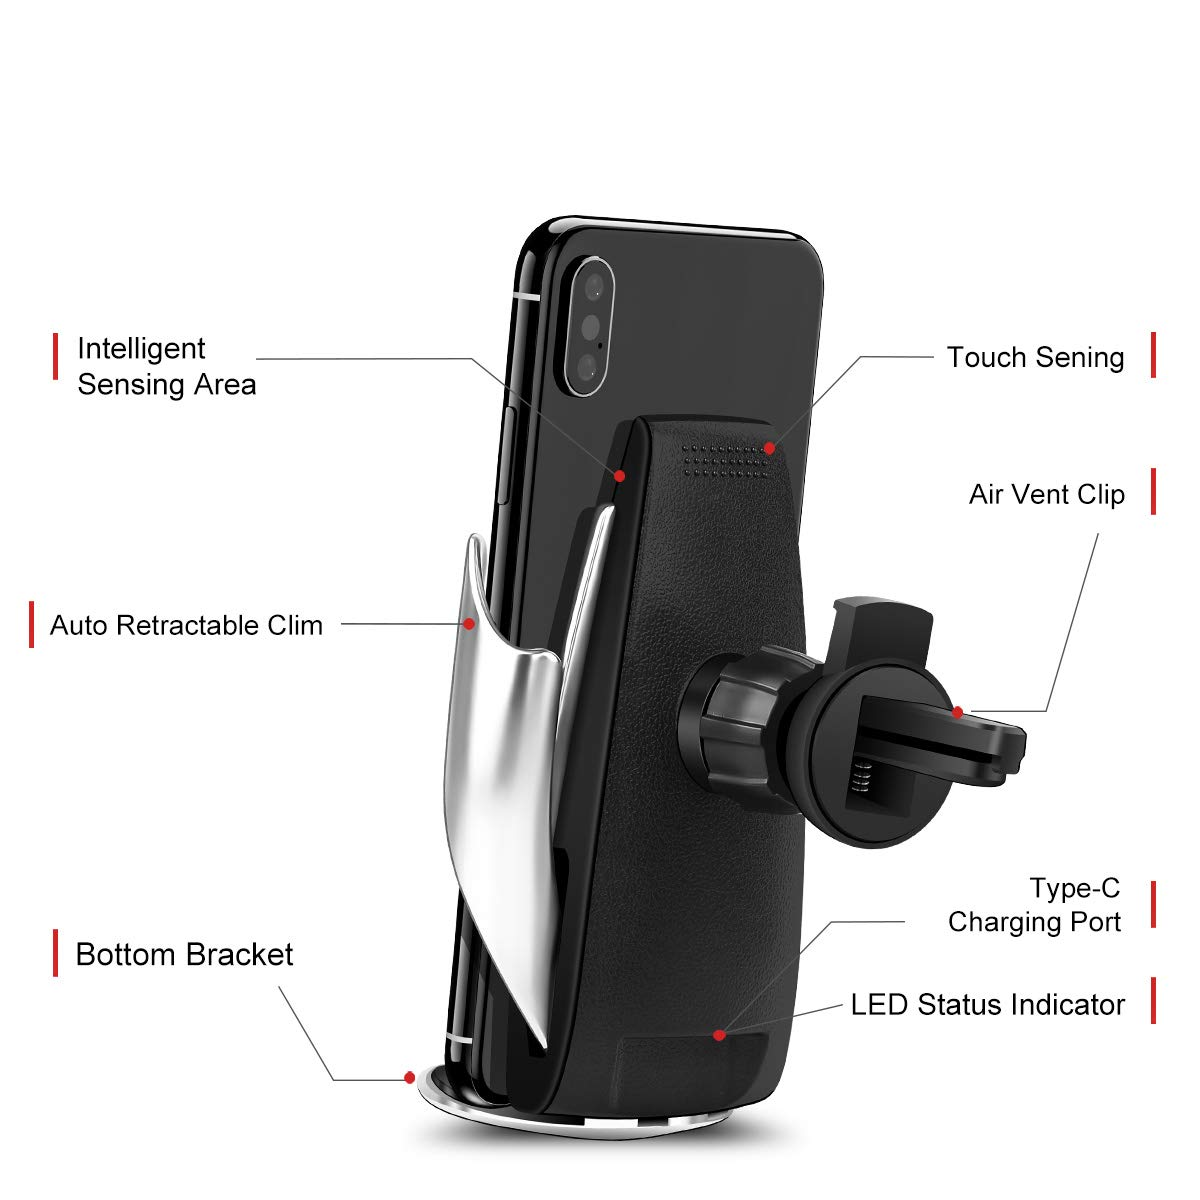 RONY Wireless Car Charger Samsung Galaxy Note 9// S9// S9+// S8 etc. Automatic Clamping Wireless Car Charger Mount 10W Fast Charging Car Charger Holder Compatible with iPhone Xs//Xs Max//XR//X //8